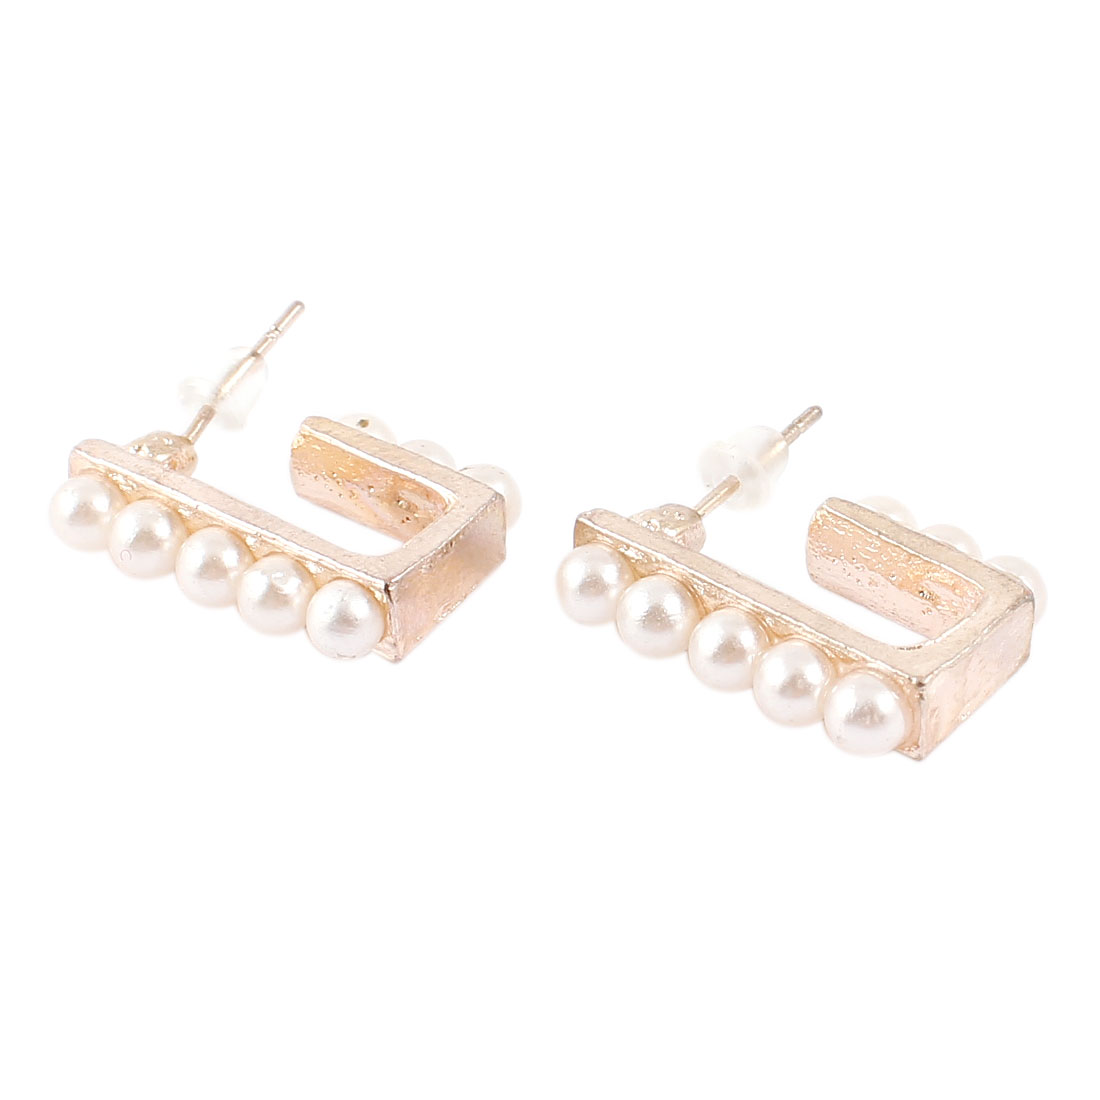 "Lady 0.7"" Length Gold Tone Metal Rectangle Shaped Stud Earrings Pair"